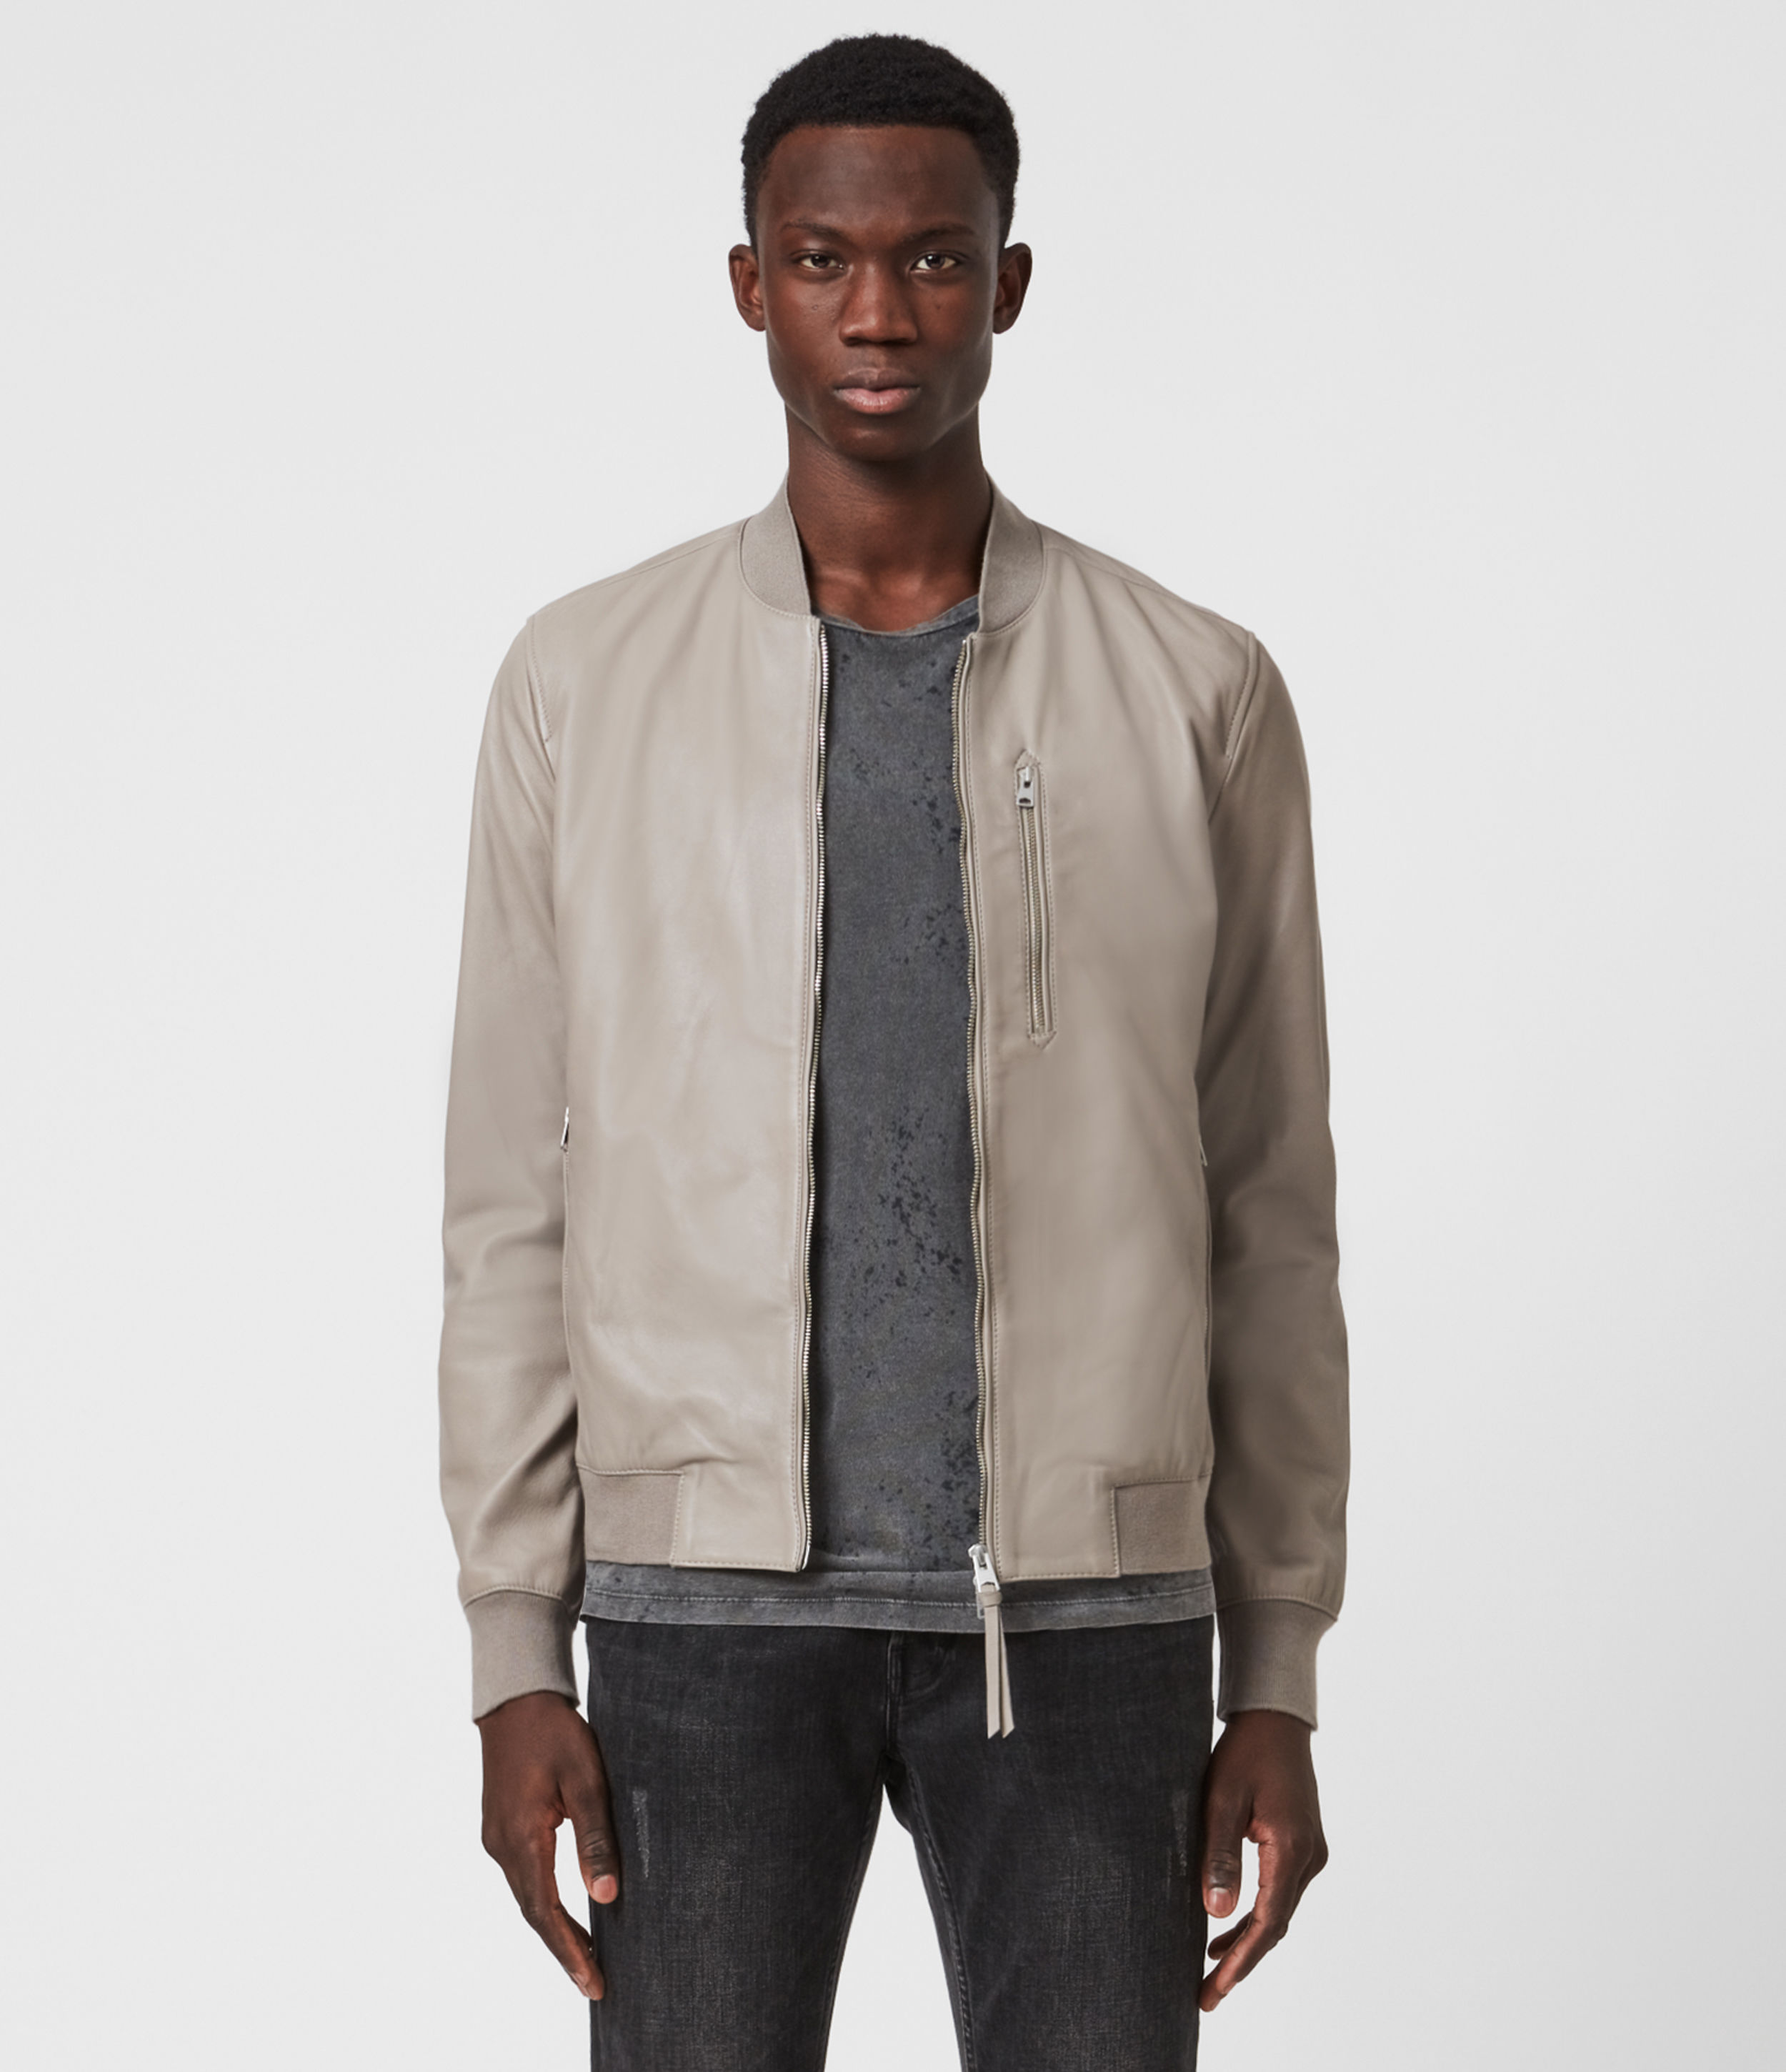 AllSaints Mens Kiro Leather Bomber Jacket, Gravel Grey, Size: L